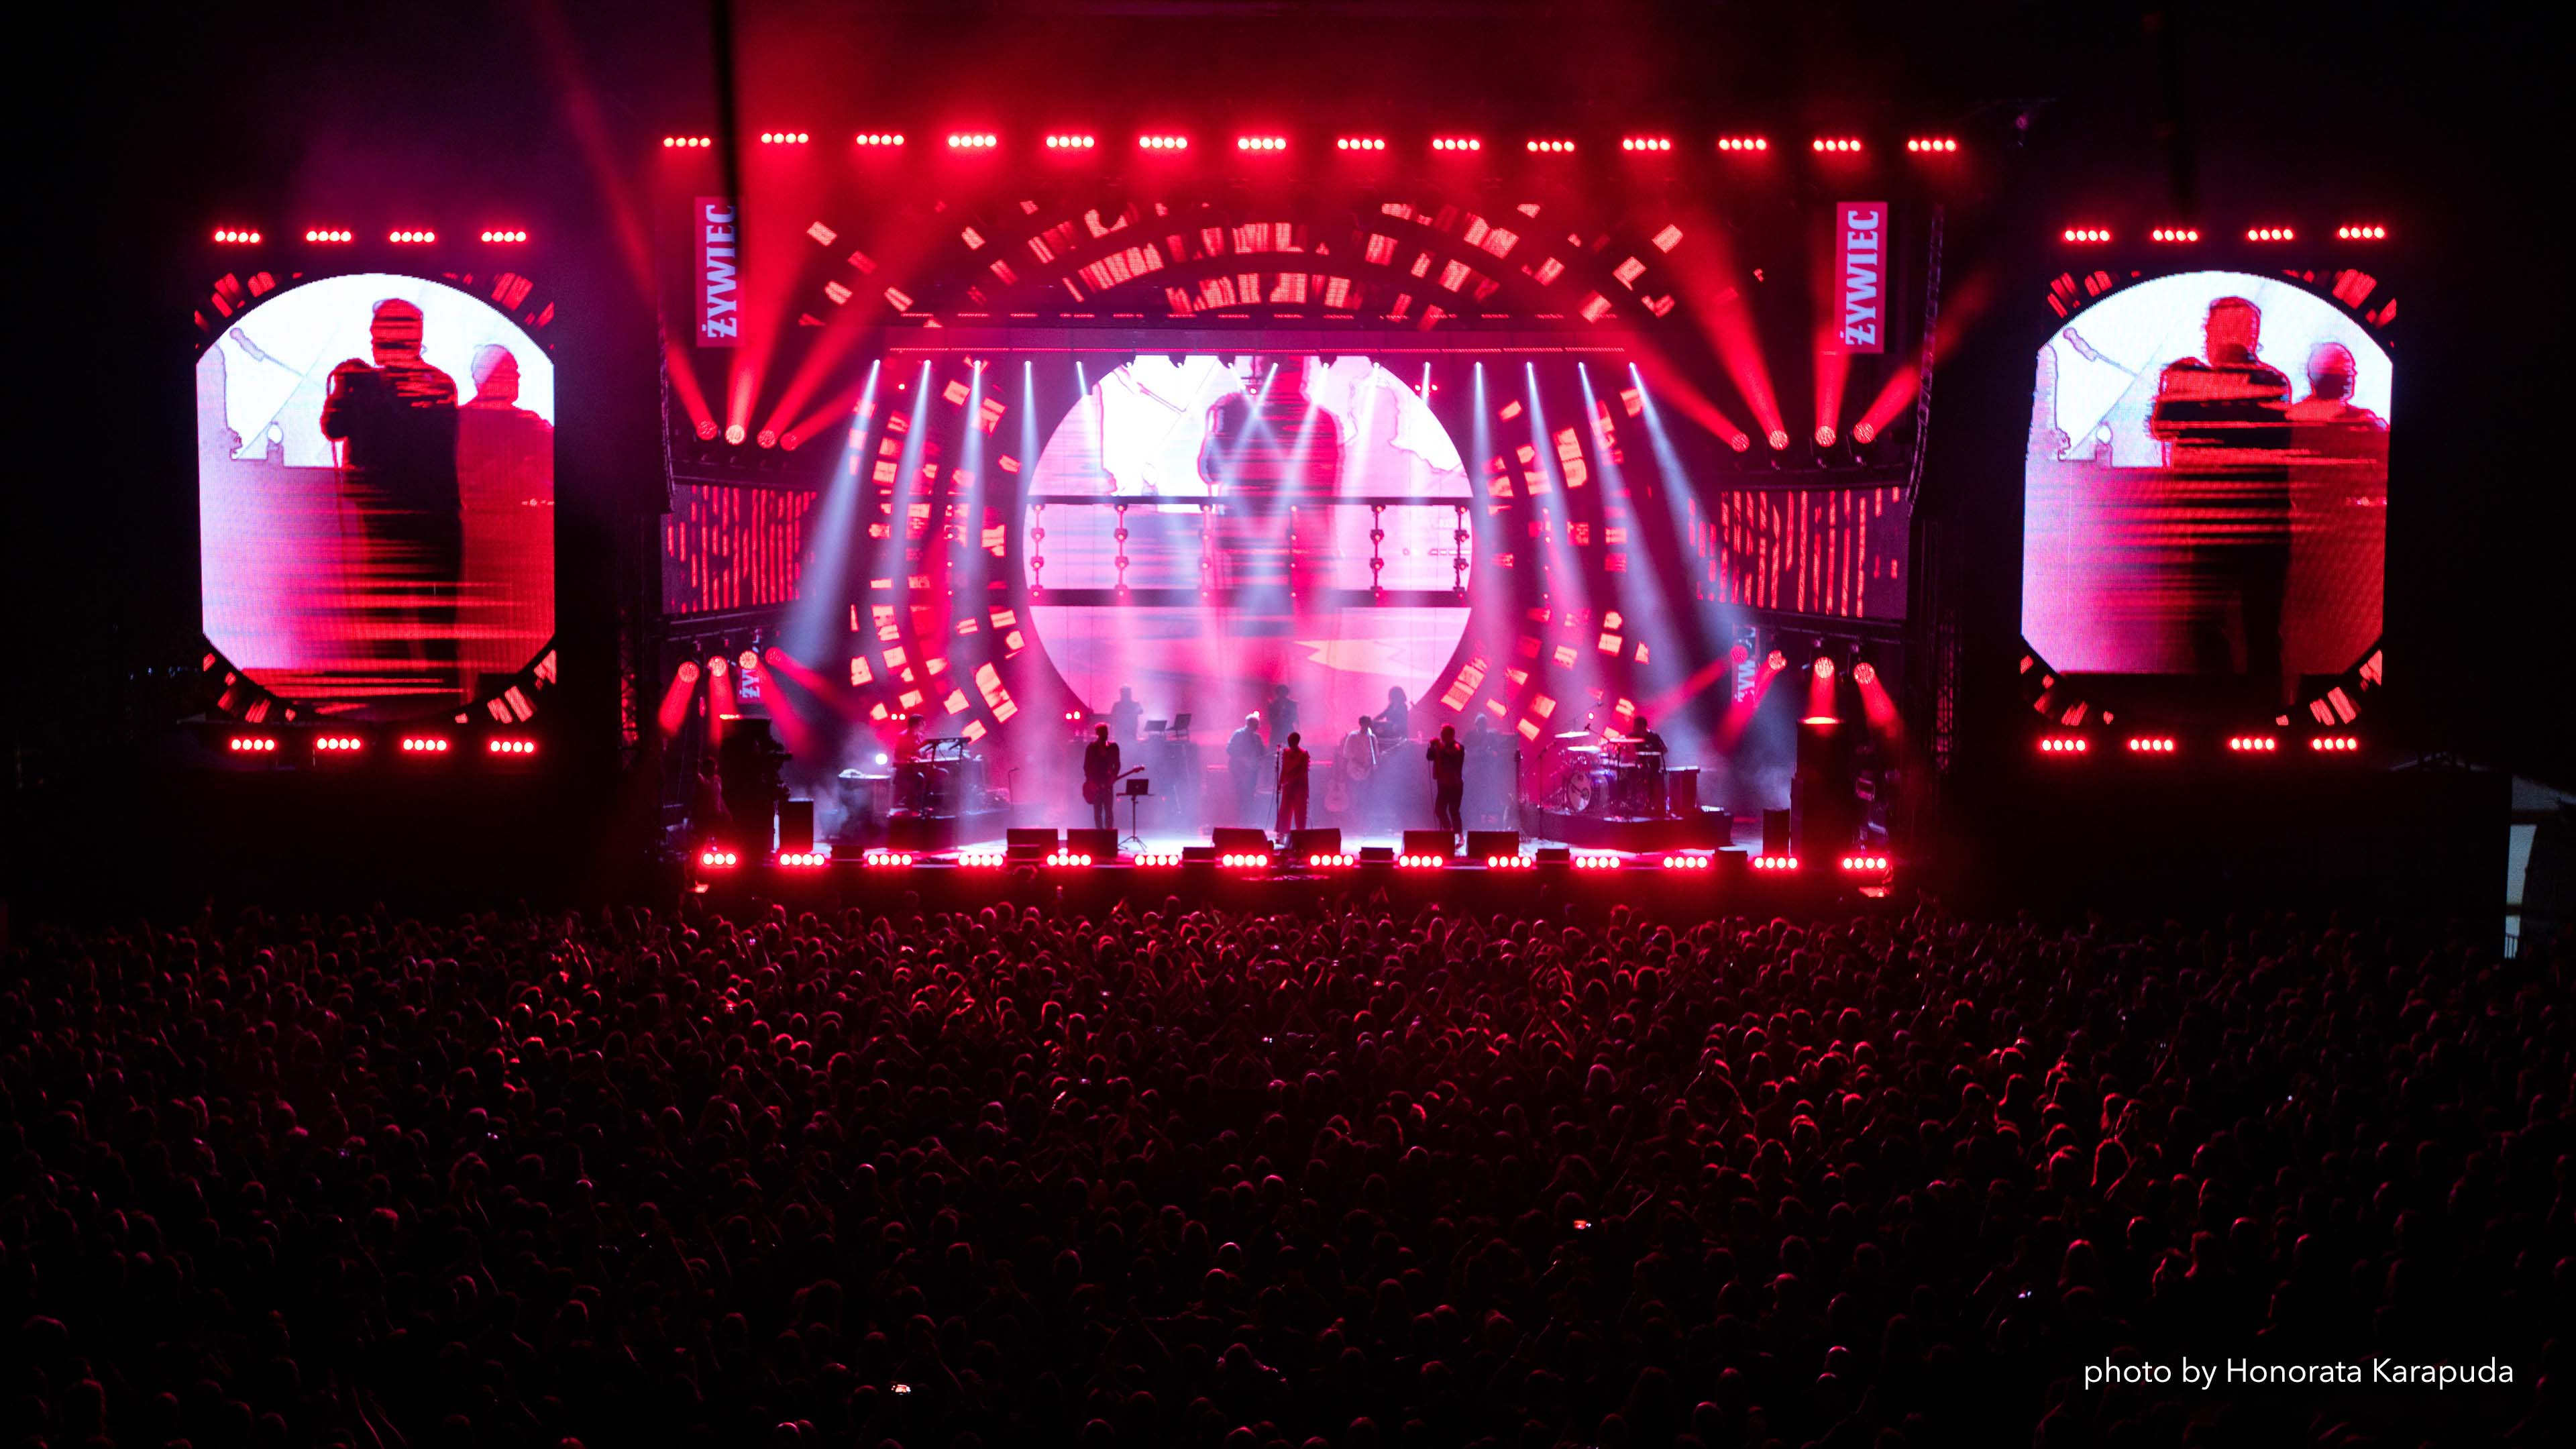 New Prolights fixtures makes an outstanding debut at Zywiec Meskie Granie in Poland